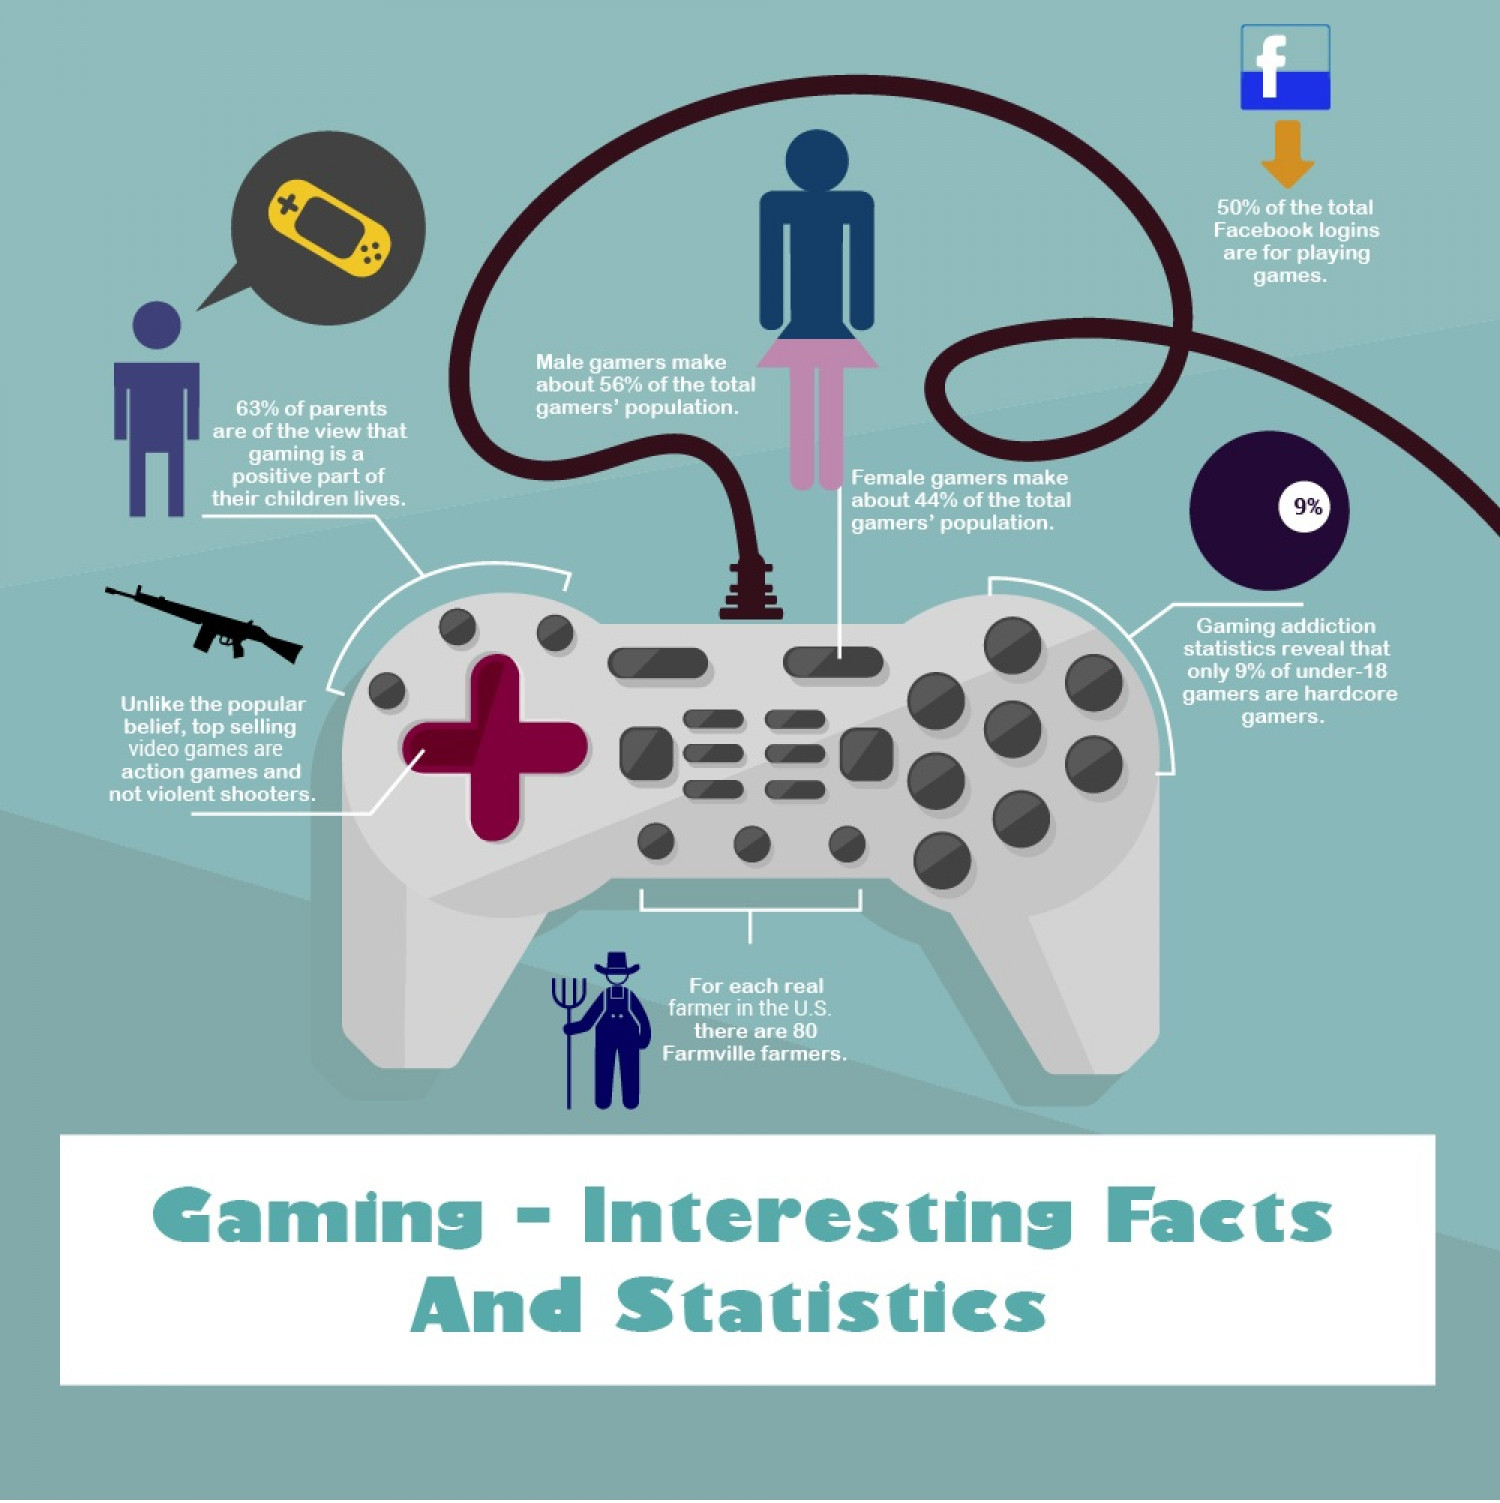 Essential Facts About Gaming Infographic